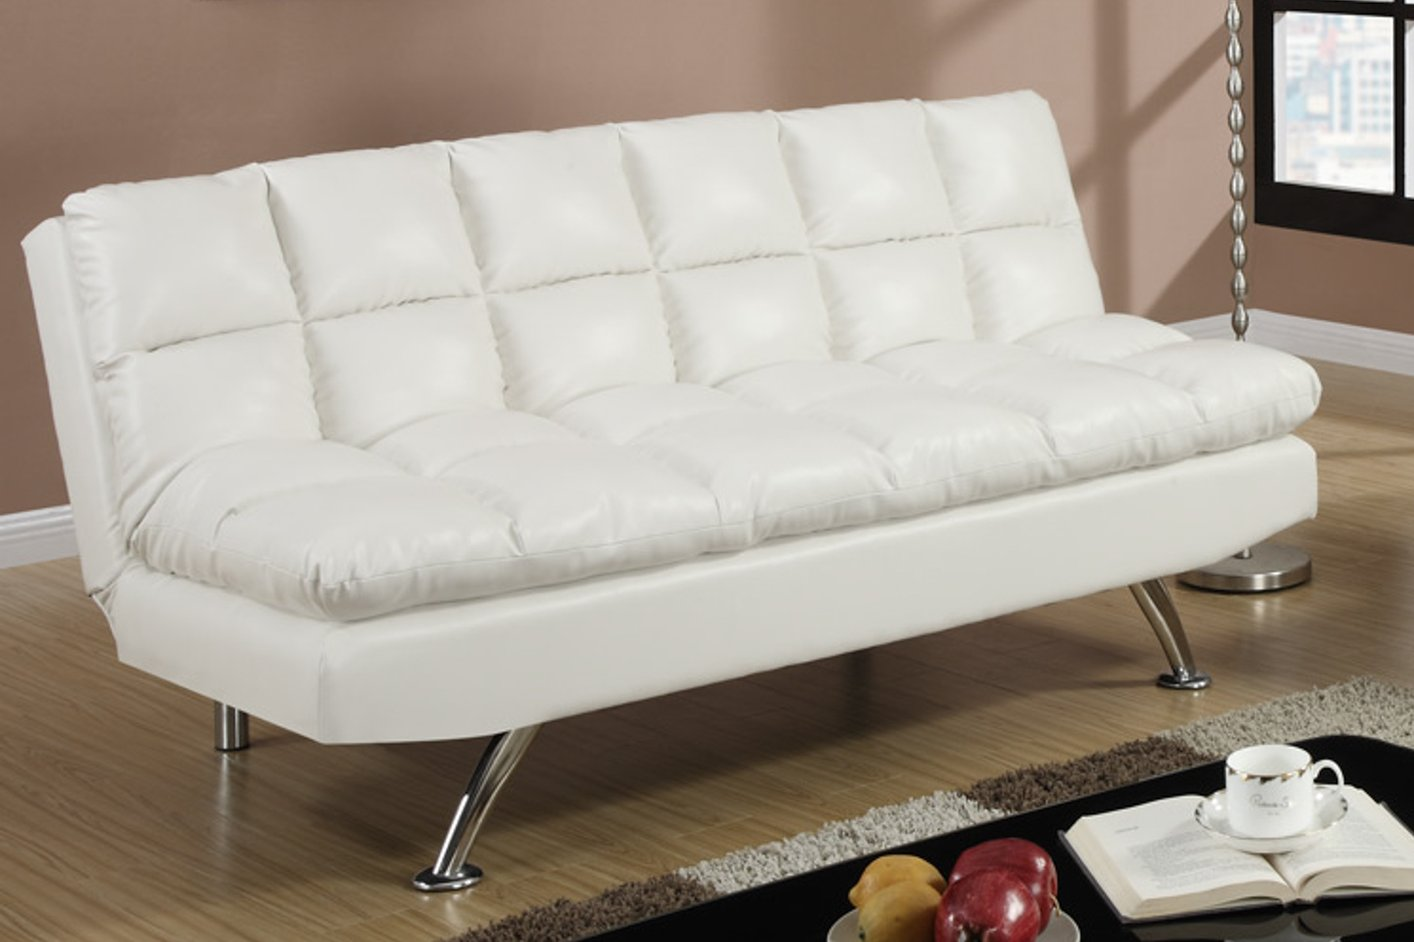 White Leather Twin Size Sofa Bed - Steal-A-Sofa Furniture Outlet Los ...